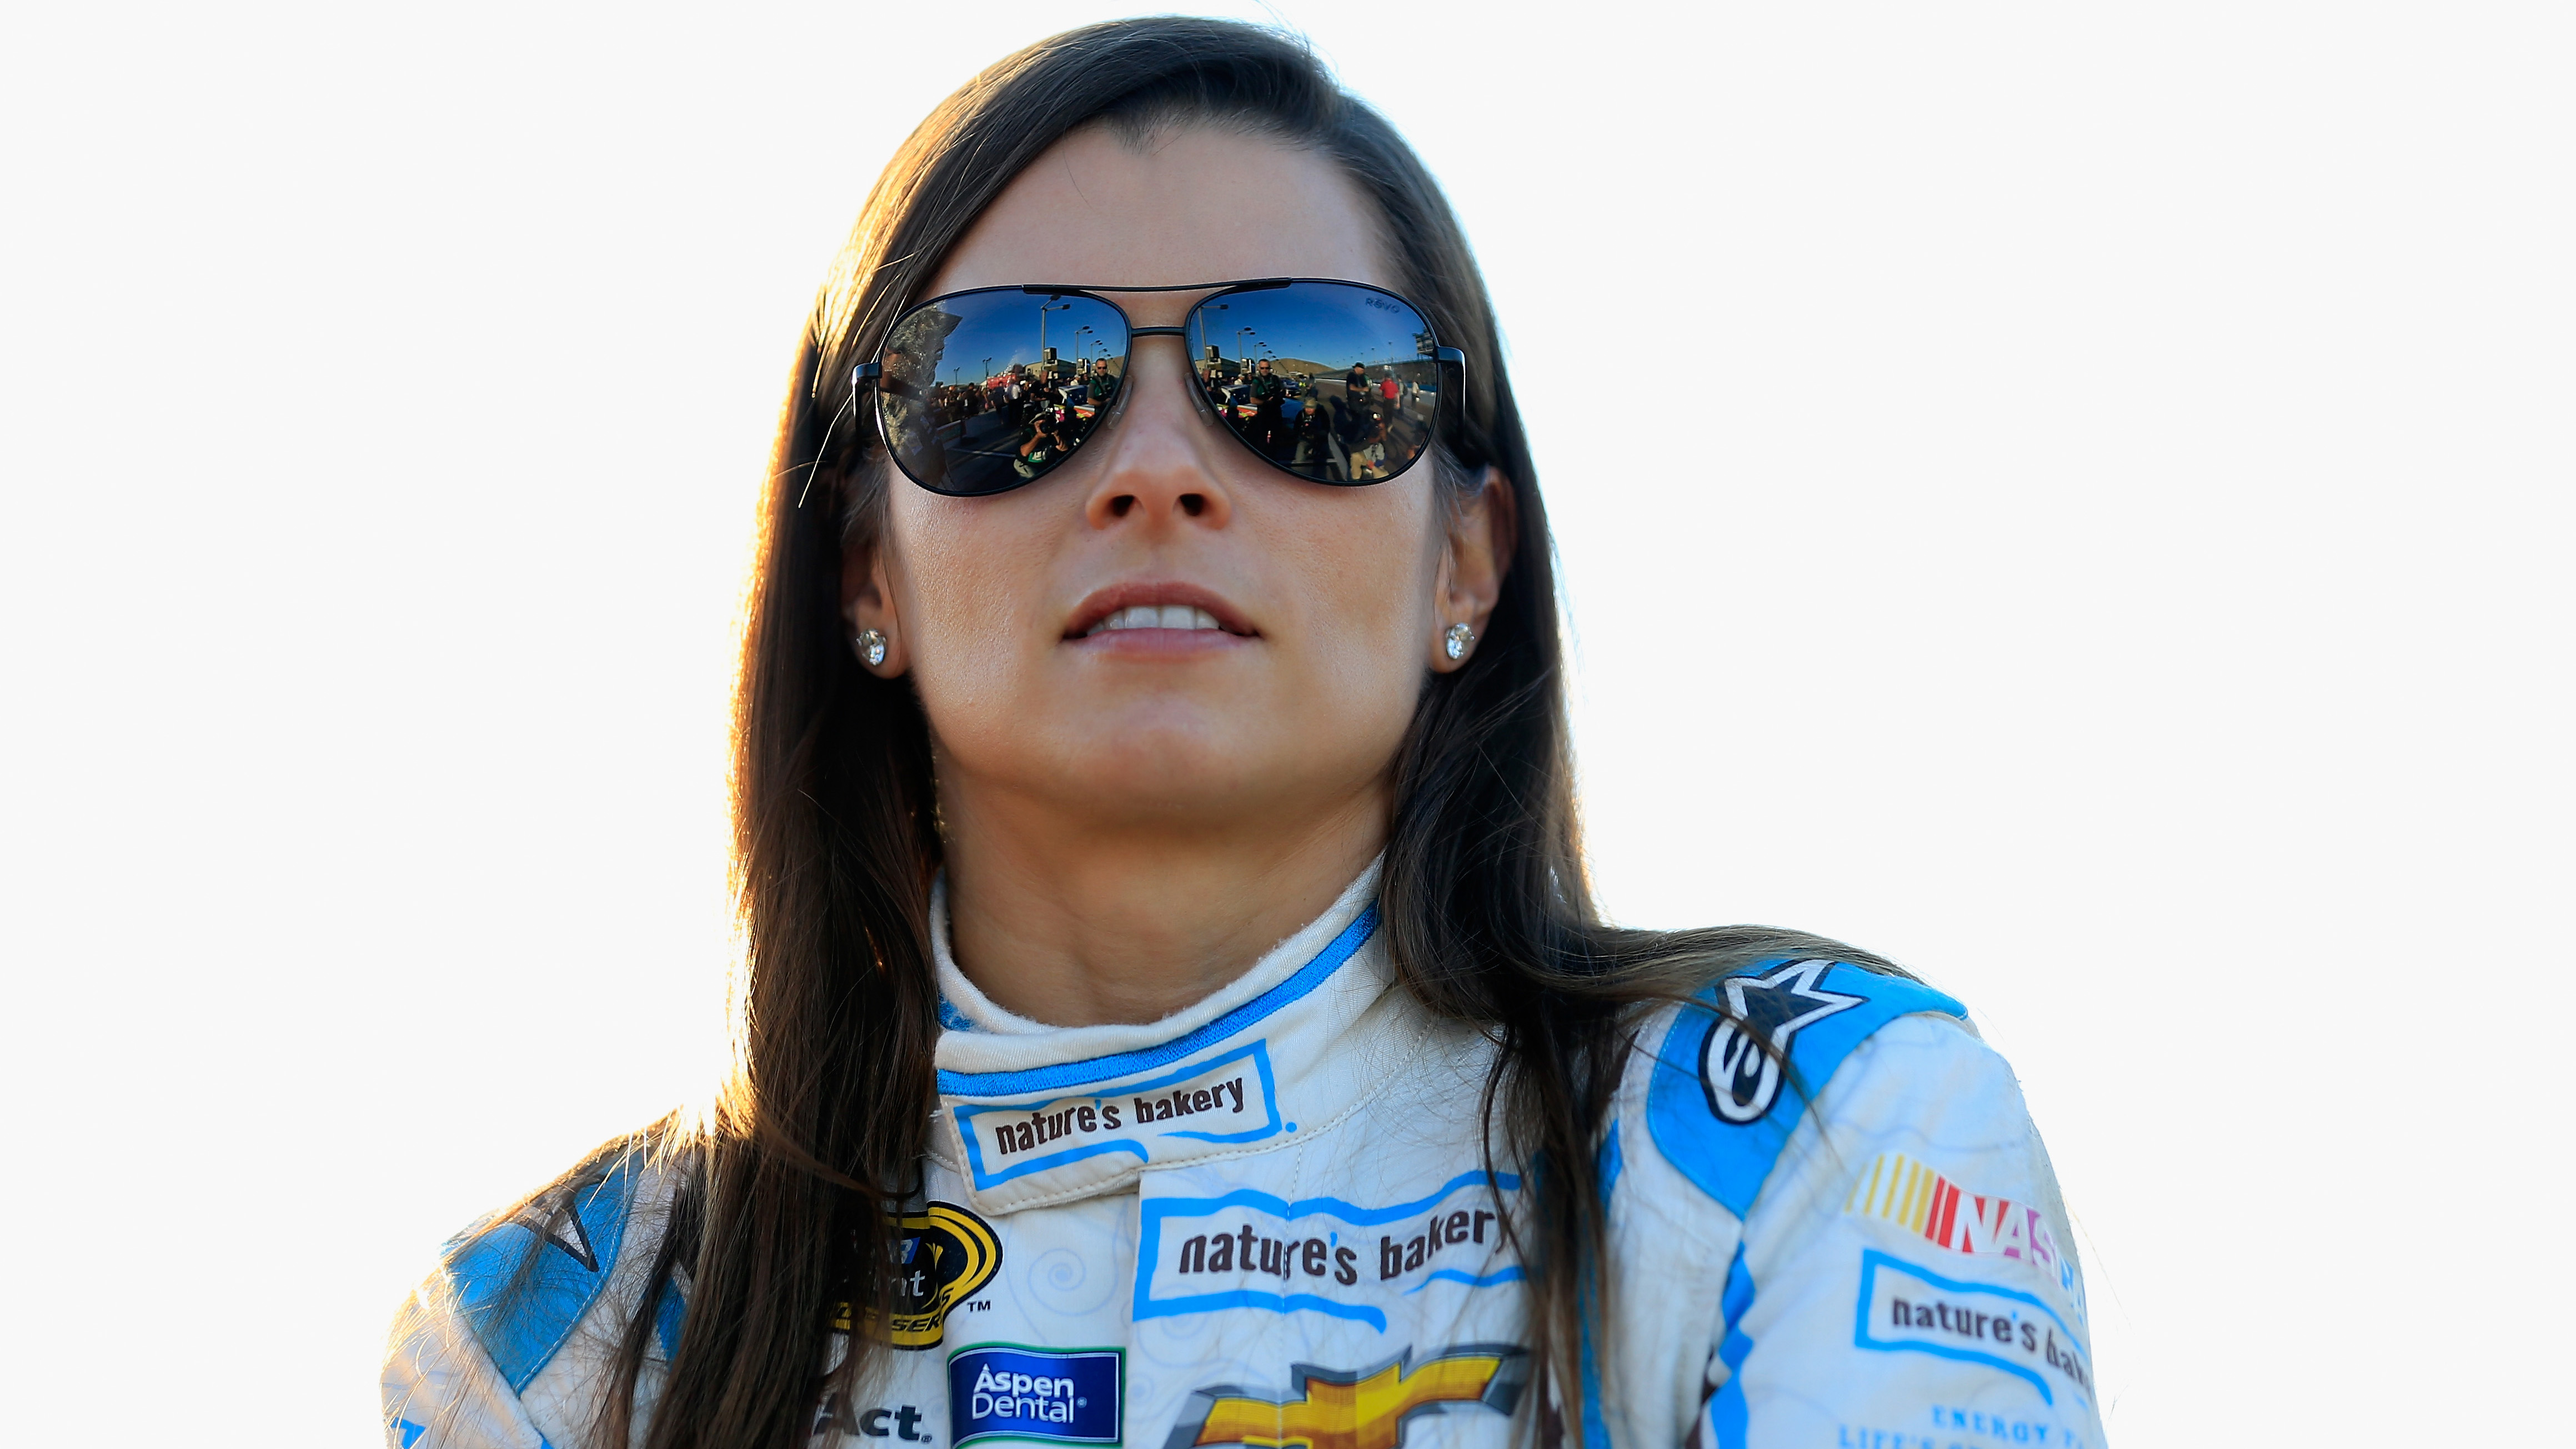 AVONDALE, AZ - NOVEMBER 11:  Danica Patrick, driver of the #10 Nature's Bakery Chevrolet, stands on the grid during qualifying for the NASCAR Sprint Cup Series Can-Am 500 at Phoenix International Raceway on November 11, 2016 in Avondale, Arizona.  (Photo by Chris Trotman/NASCAR via Getty Images)